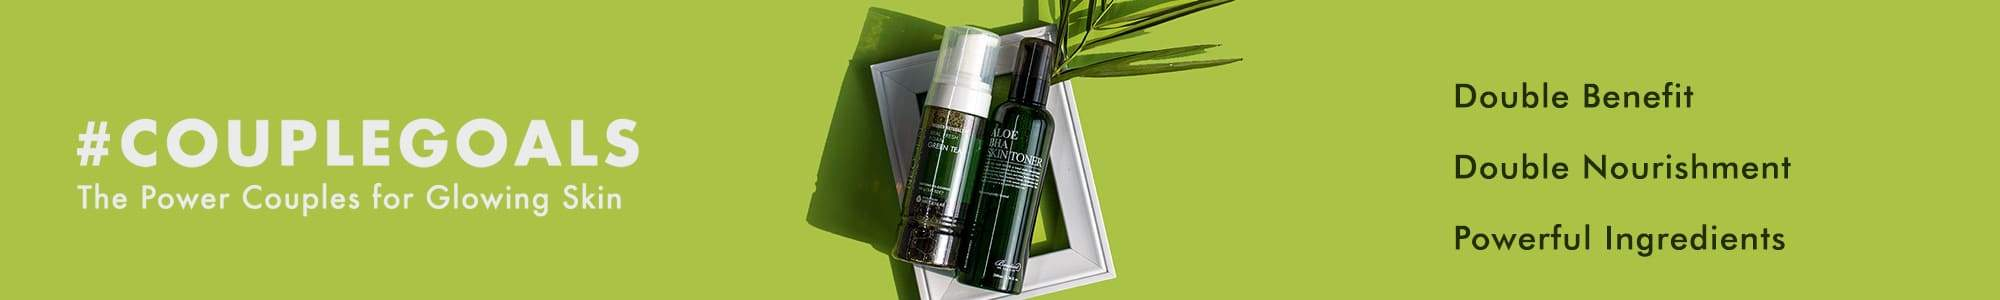 Power Couple - Skincare That Works Best Together